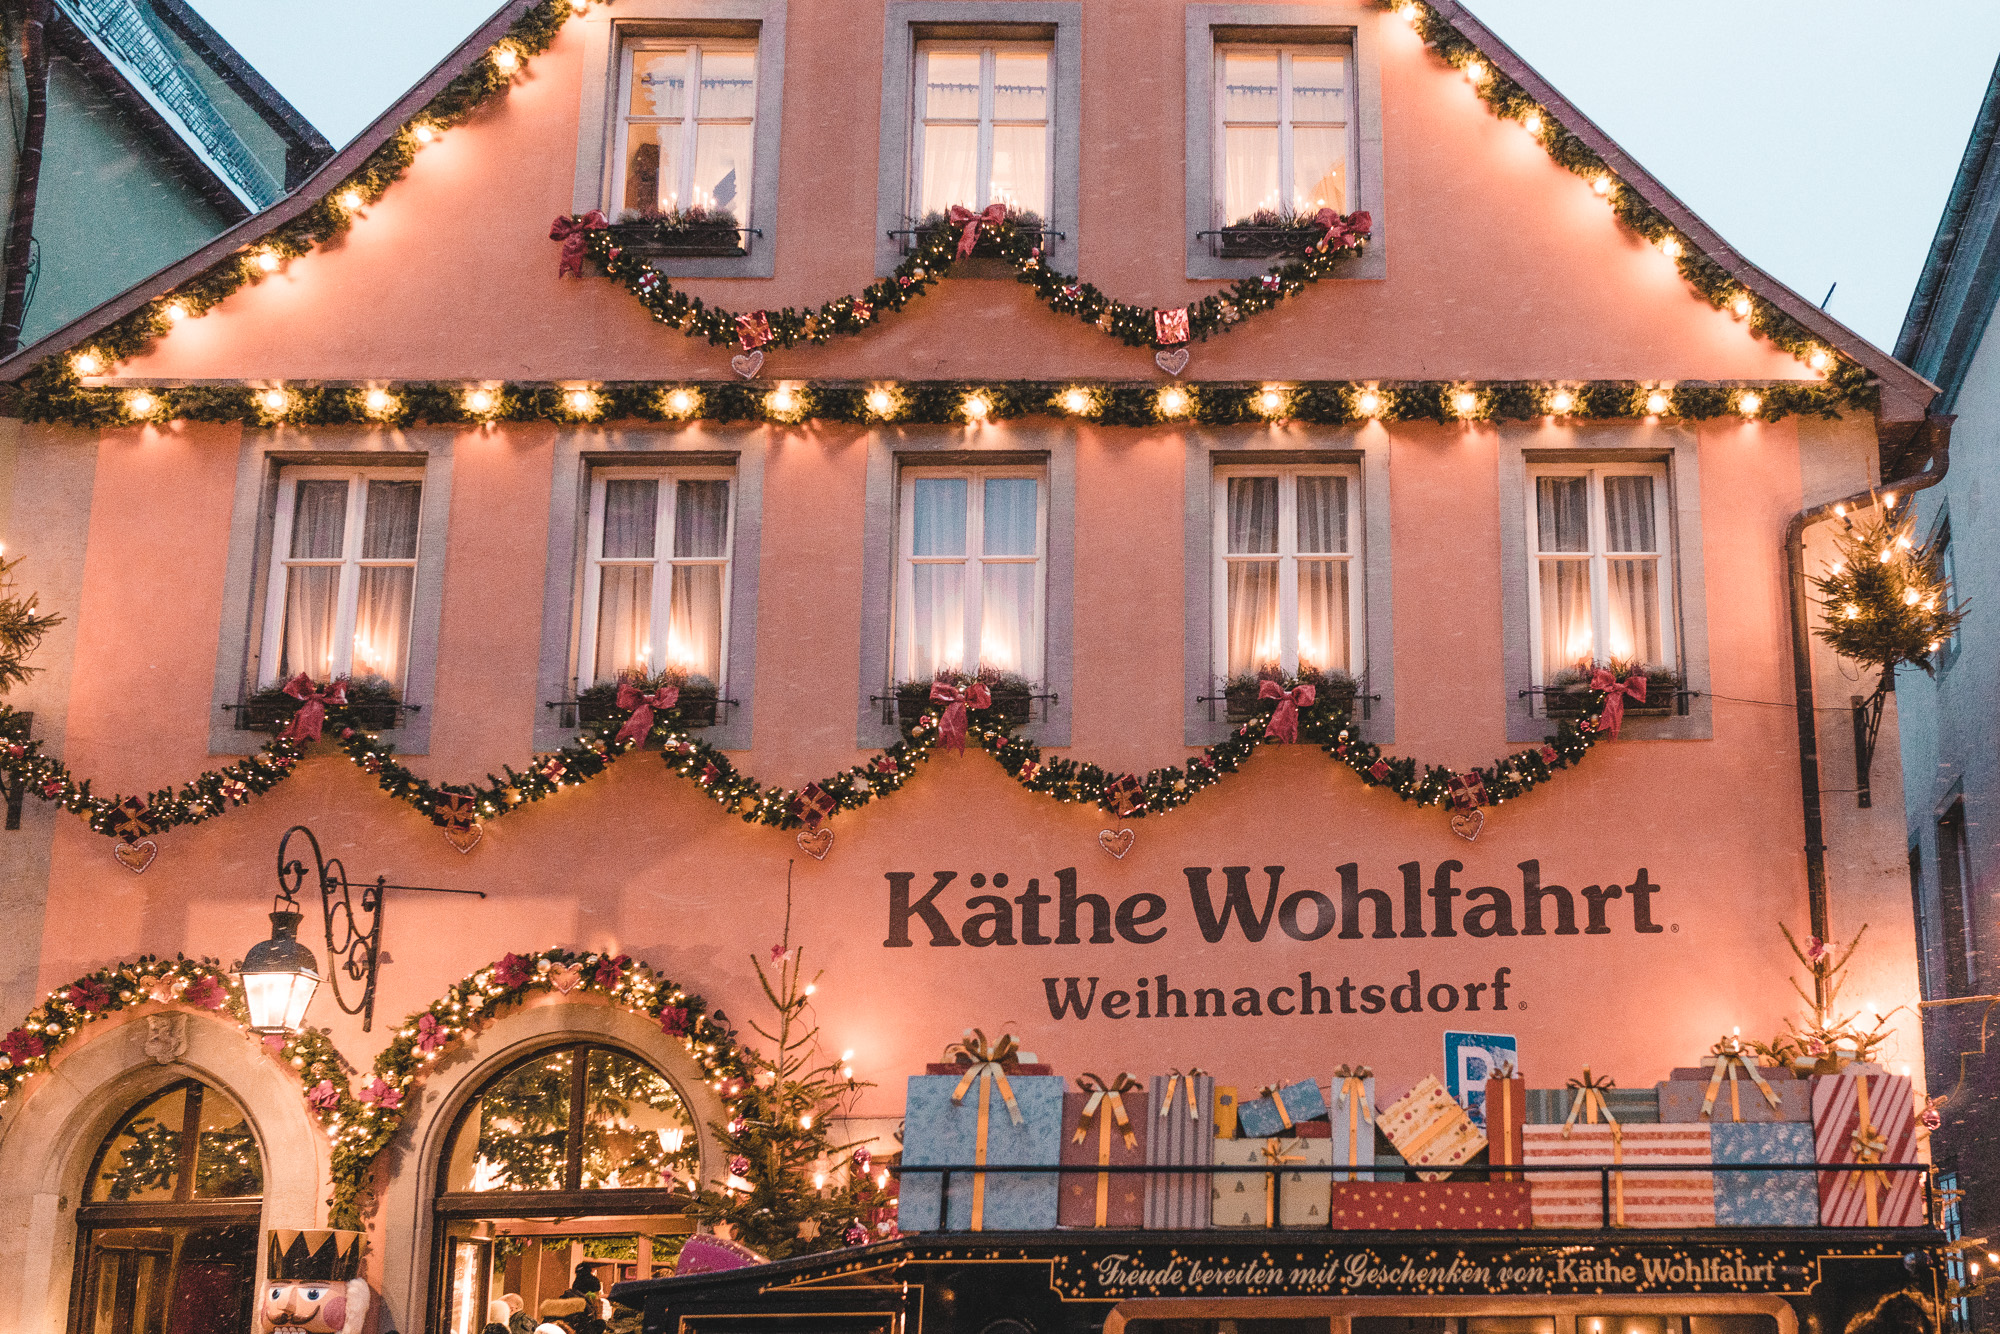 Christmas twinkle light rooftops in the pastel town of rothenburg ob der tauber germany winter